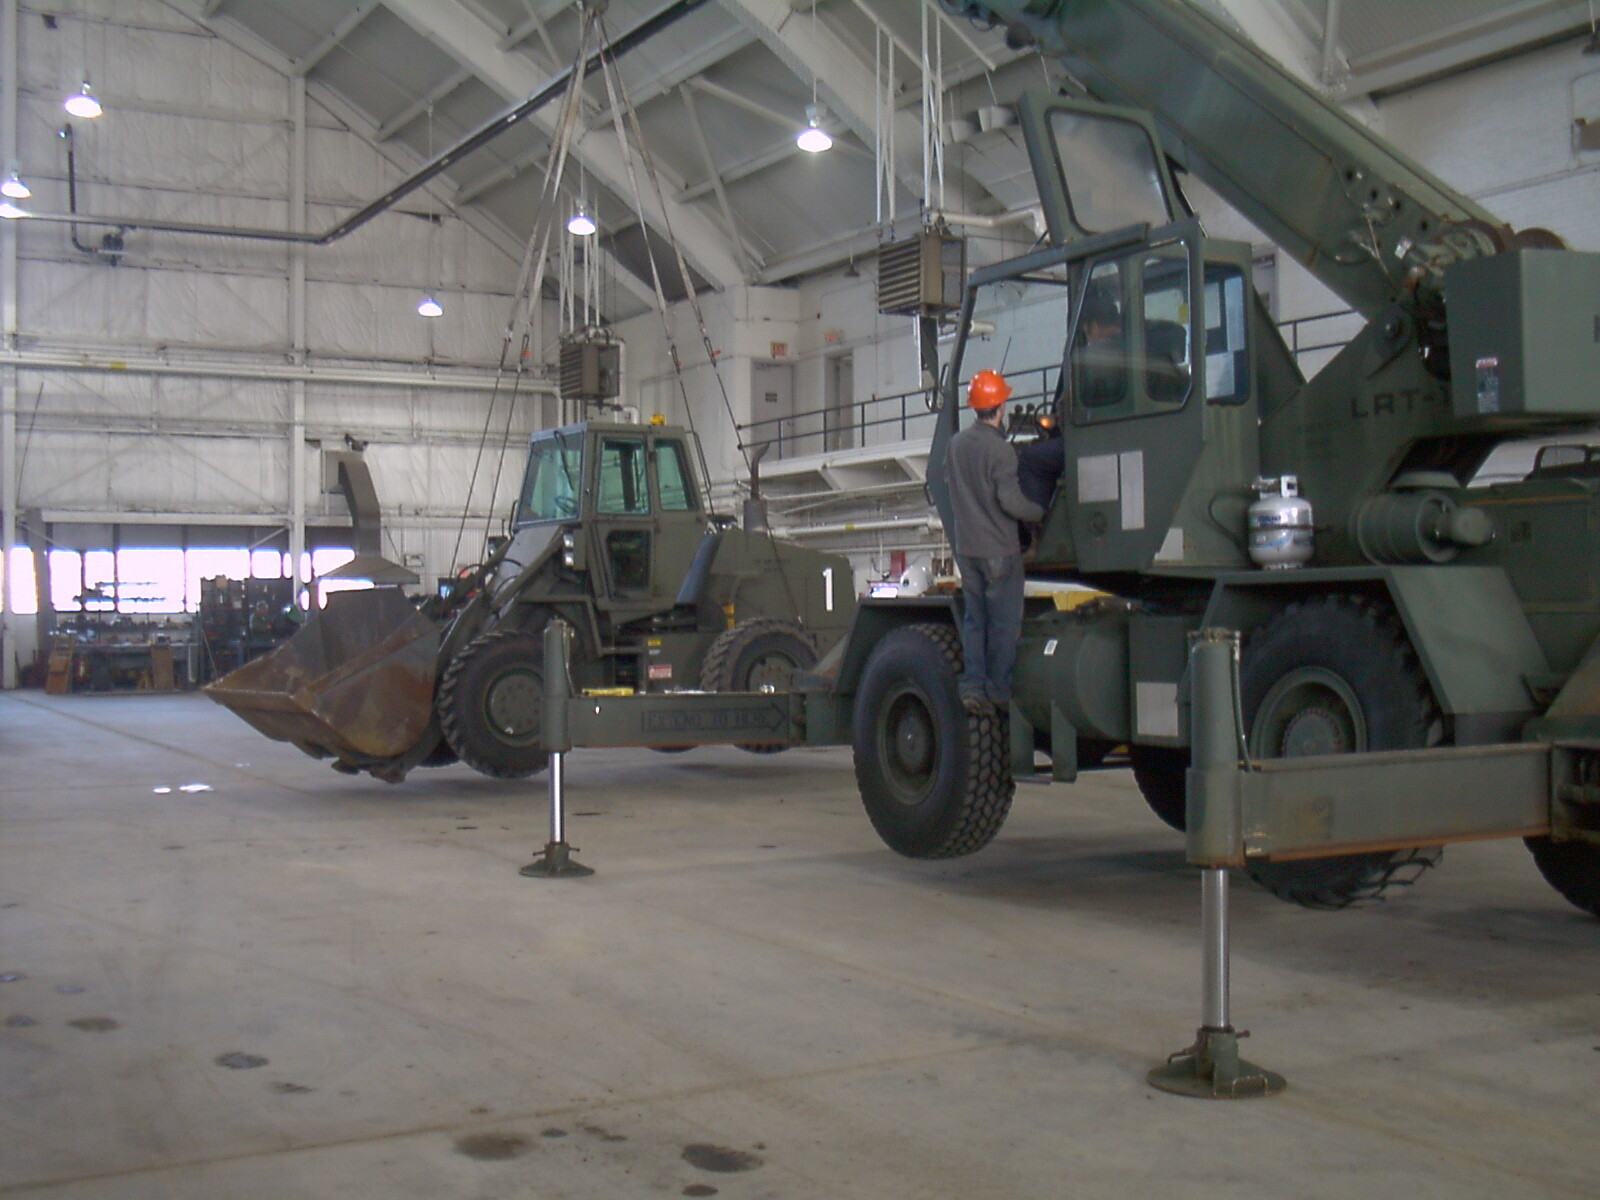 Load testing this 15T P&H inside a hangar